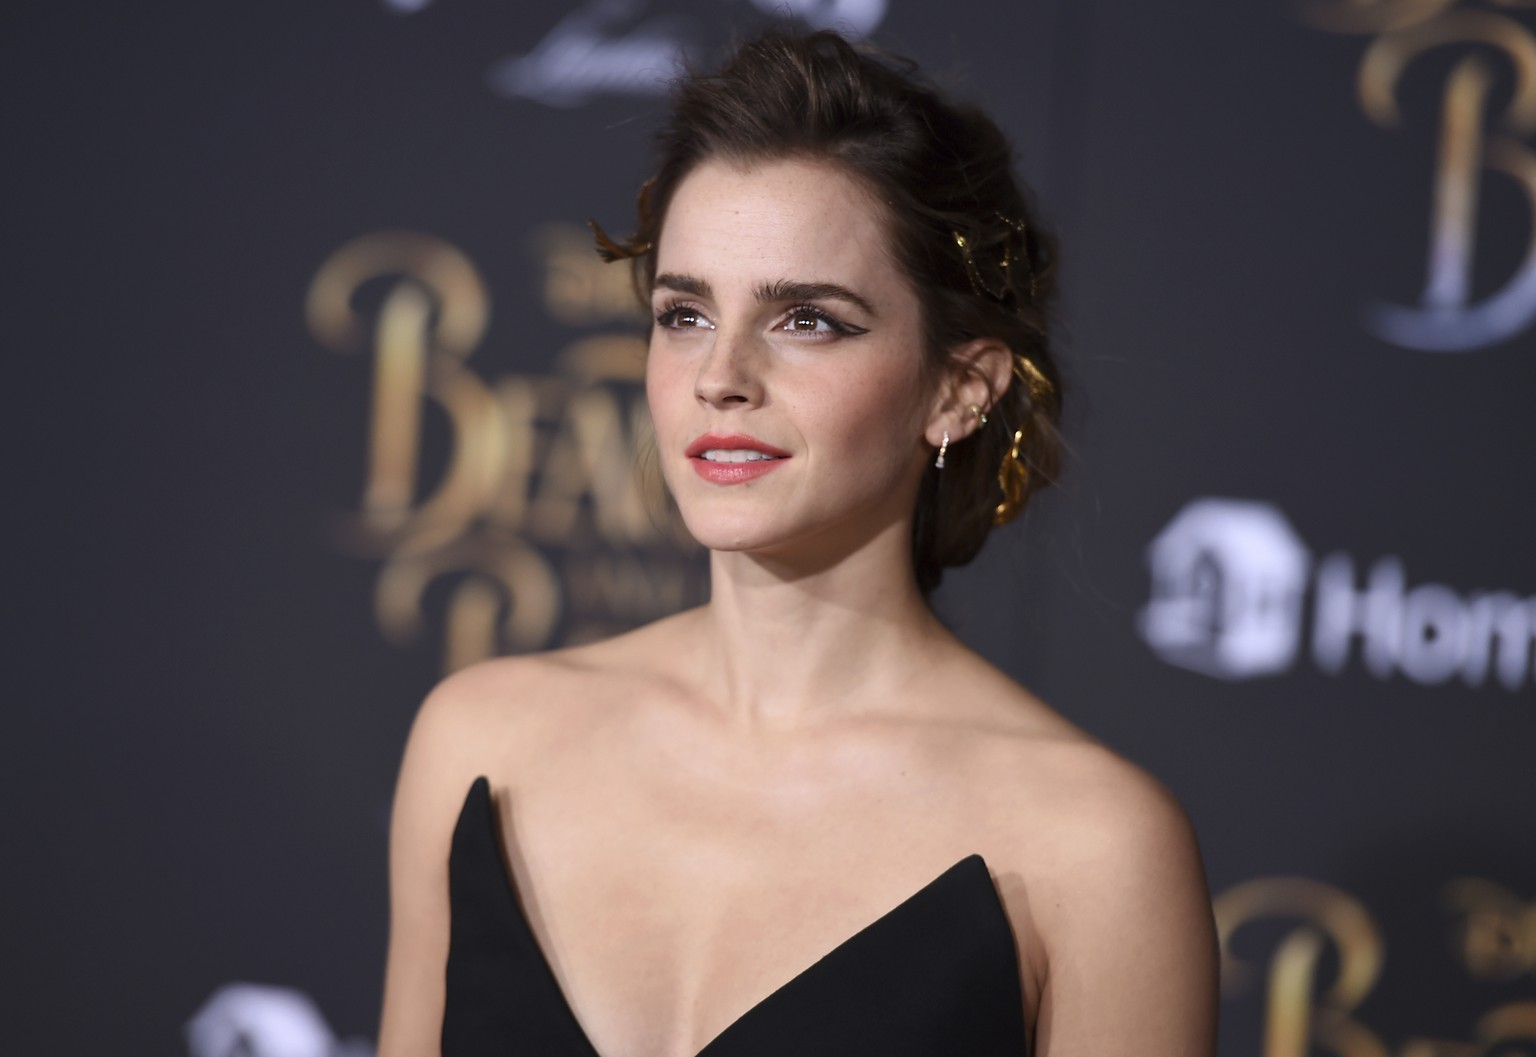 Emma Watson arrives at the world premiere of